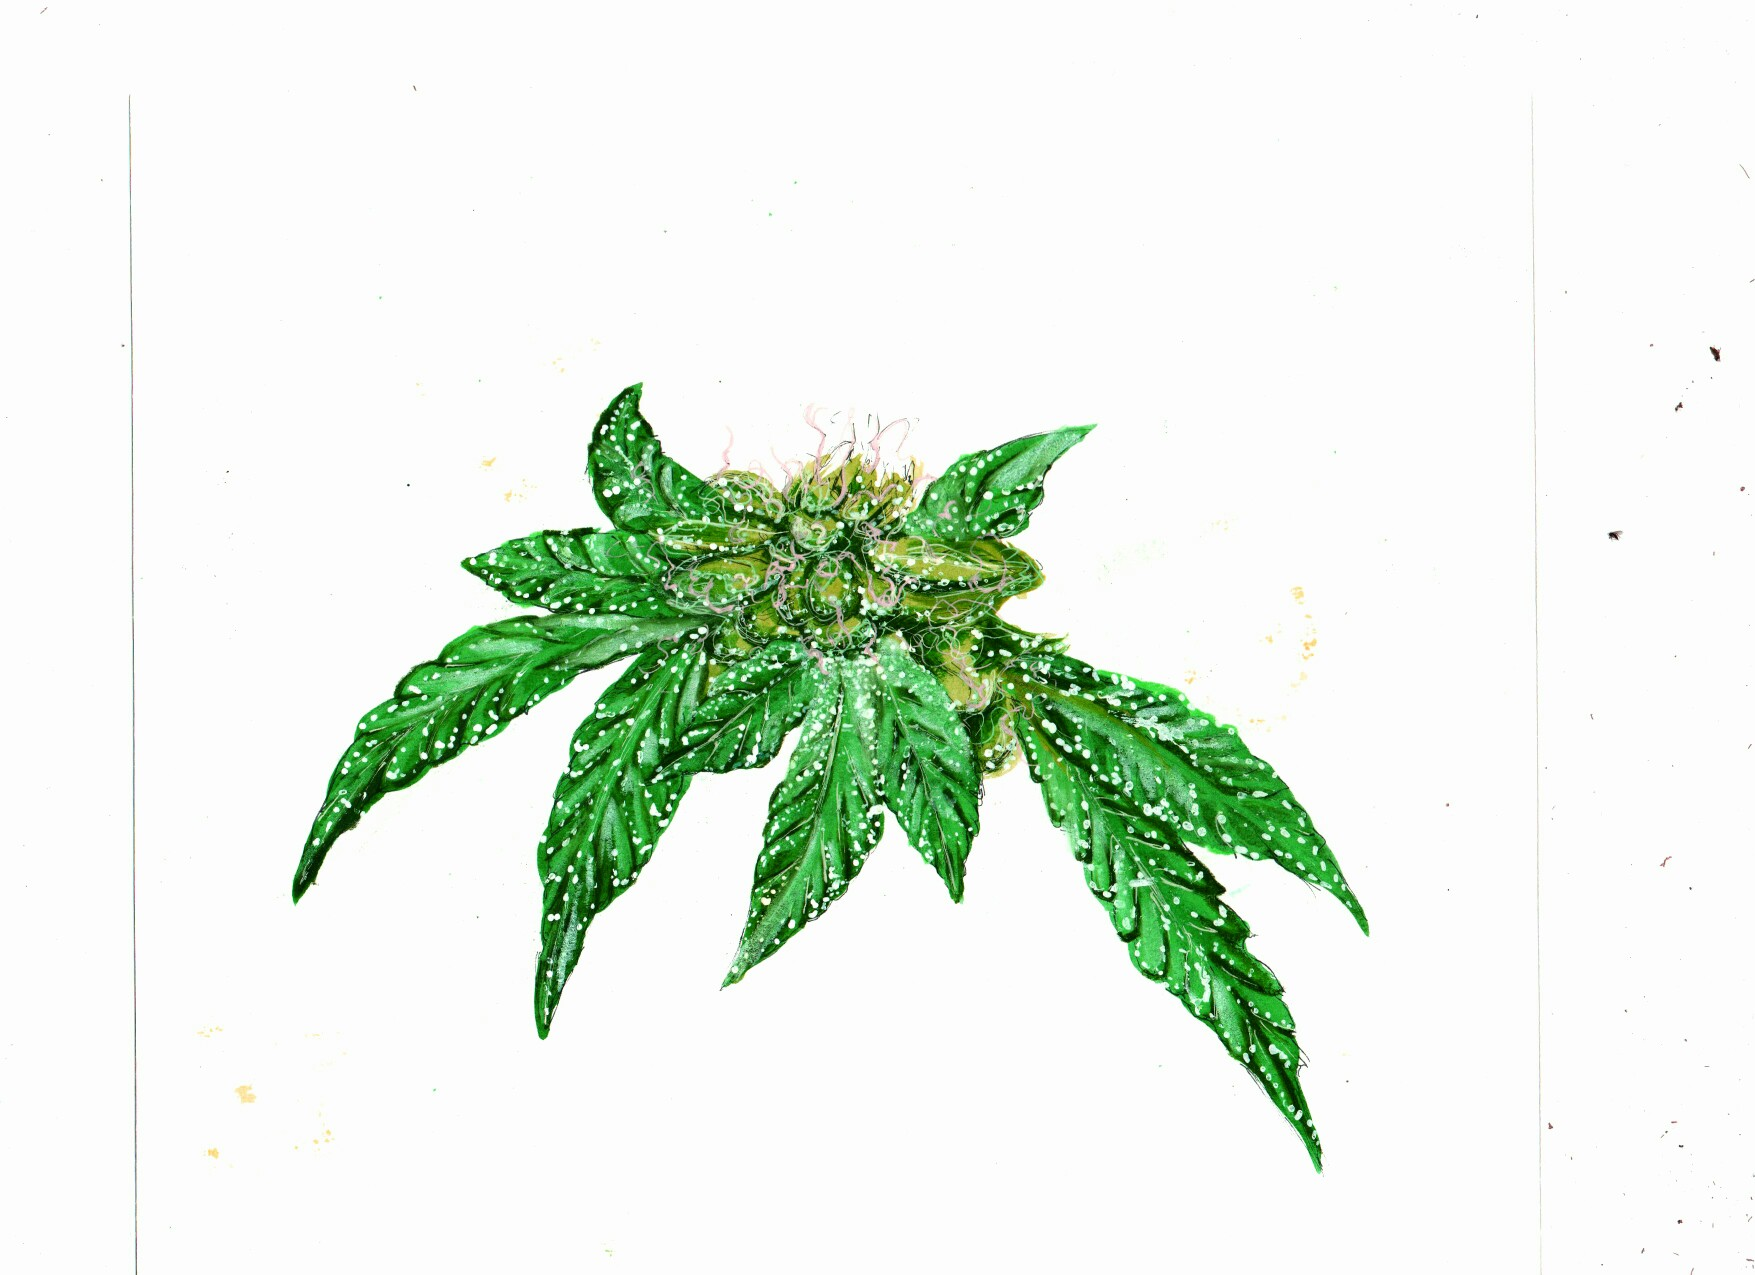 Marijuana Pot Weed Leaf Symbol Stock Illustration ... |Weed Plant Drawings